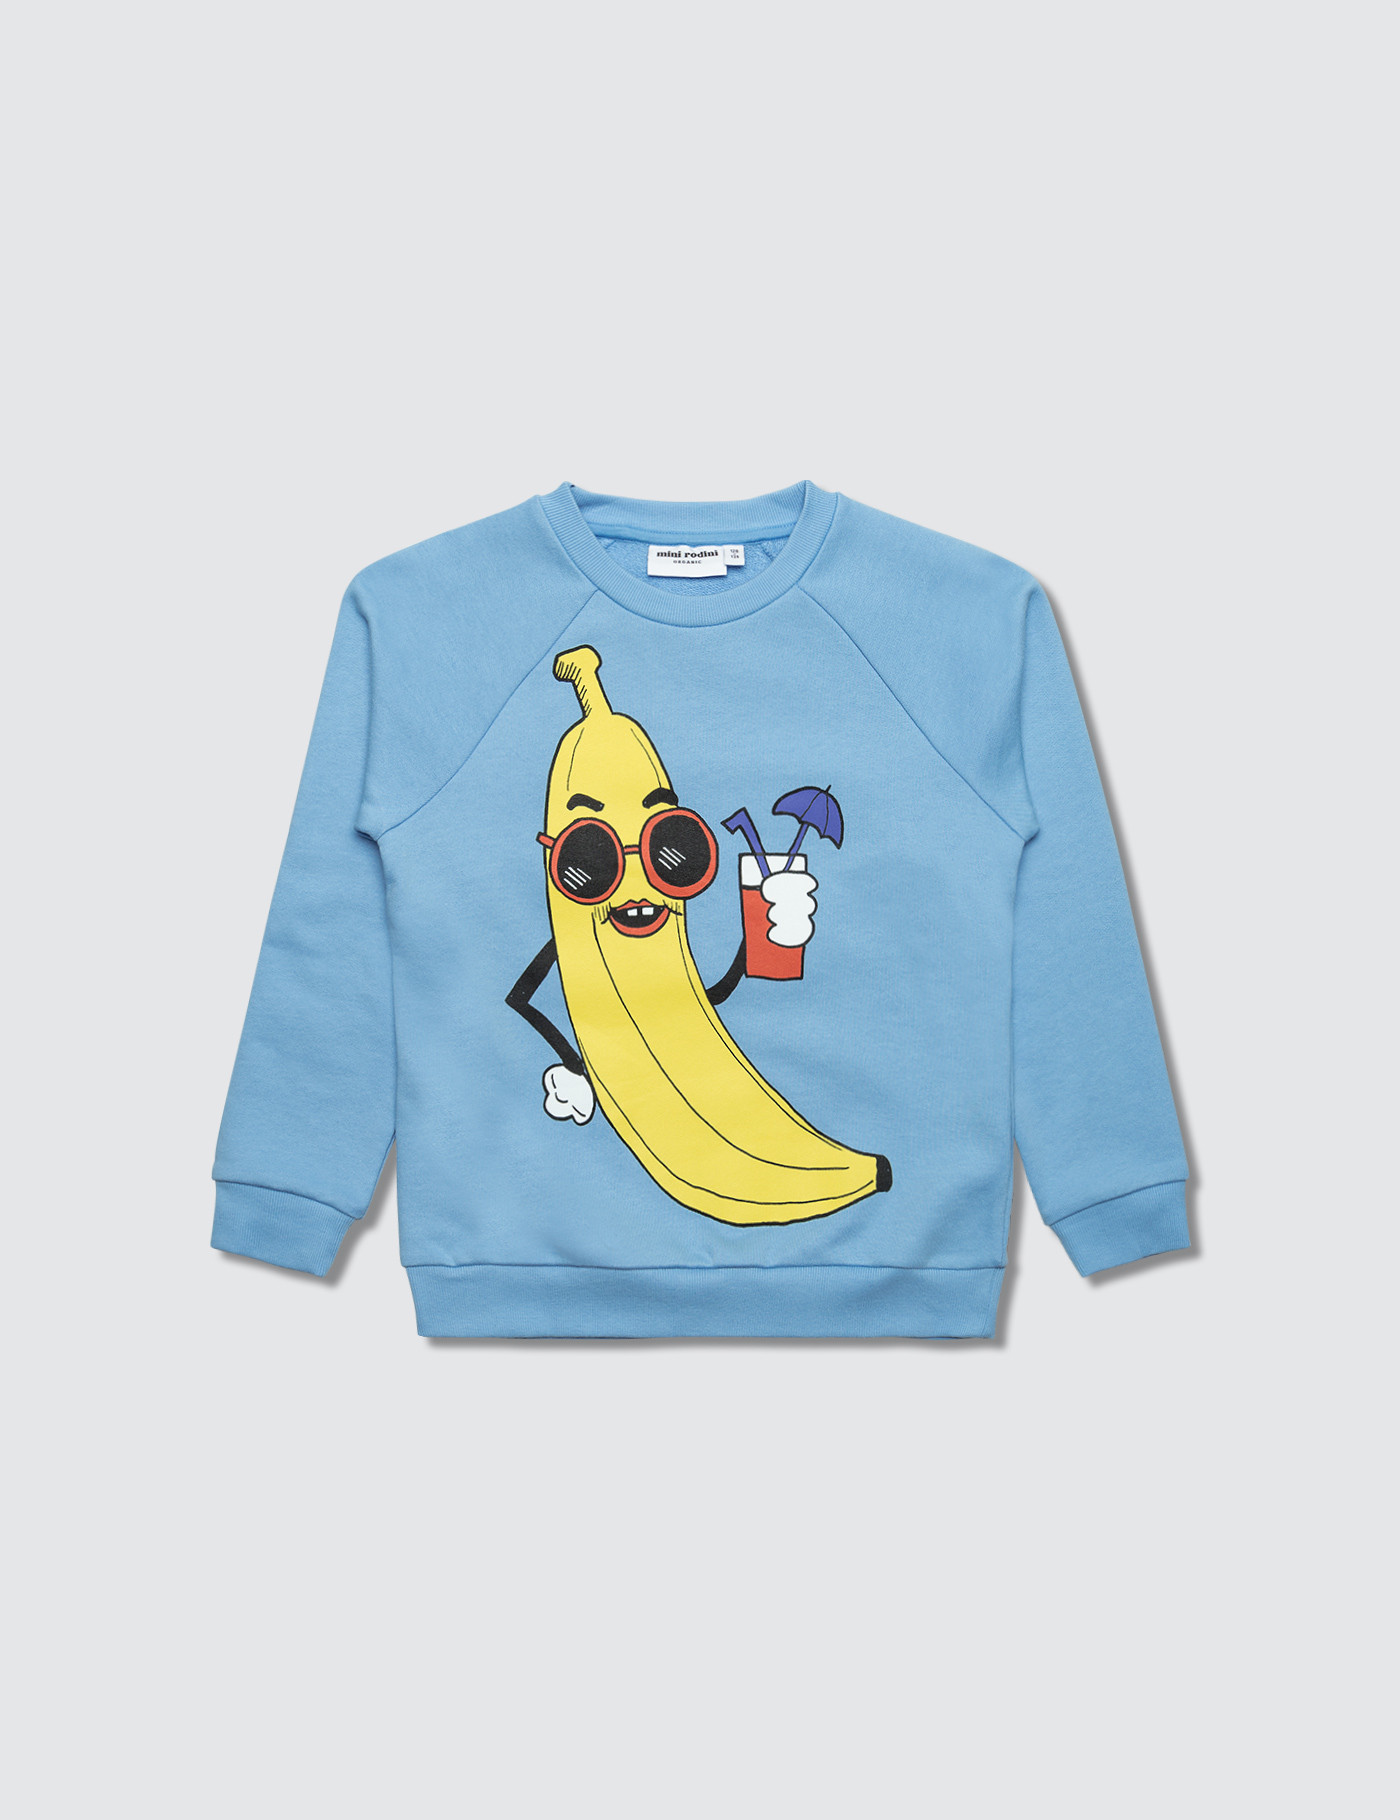 Banana Sp Sweatshirt